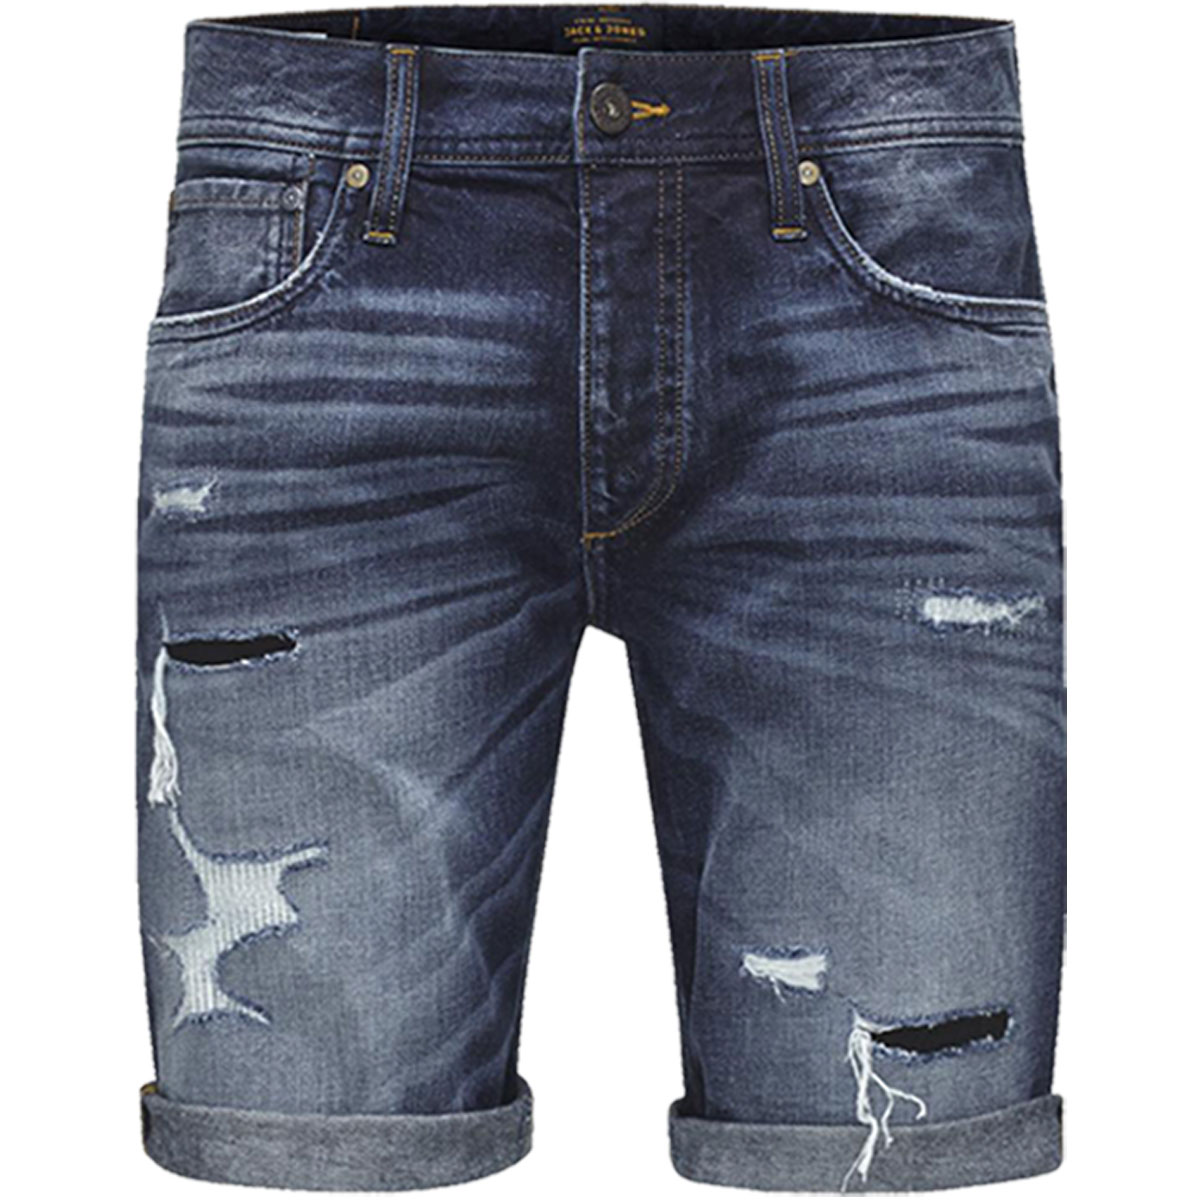 jack jones herren jeans shorts rick denim kurze hose bermuda capri vintage ebay. Black Bedroom Furniture Sets. Home Design Ideas